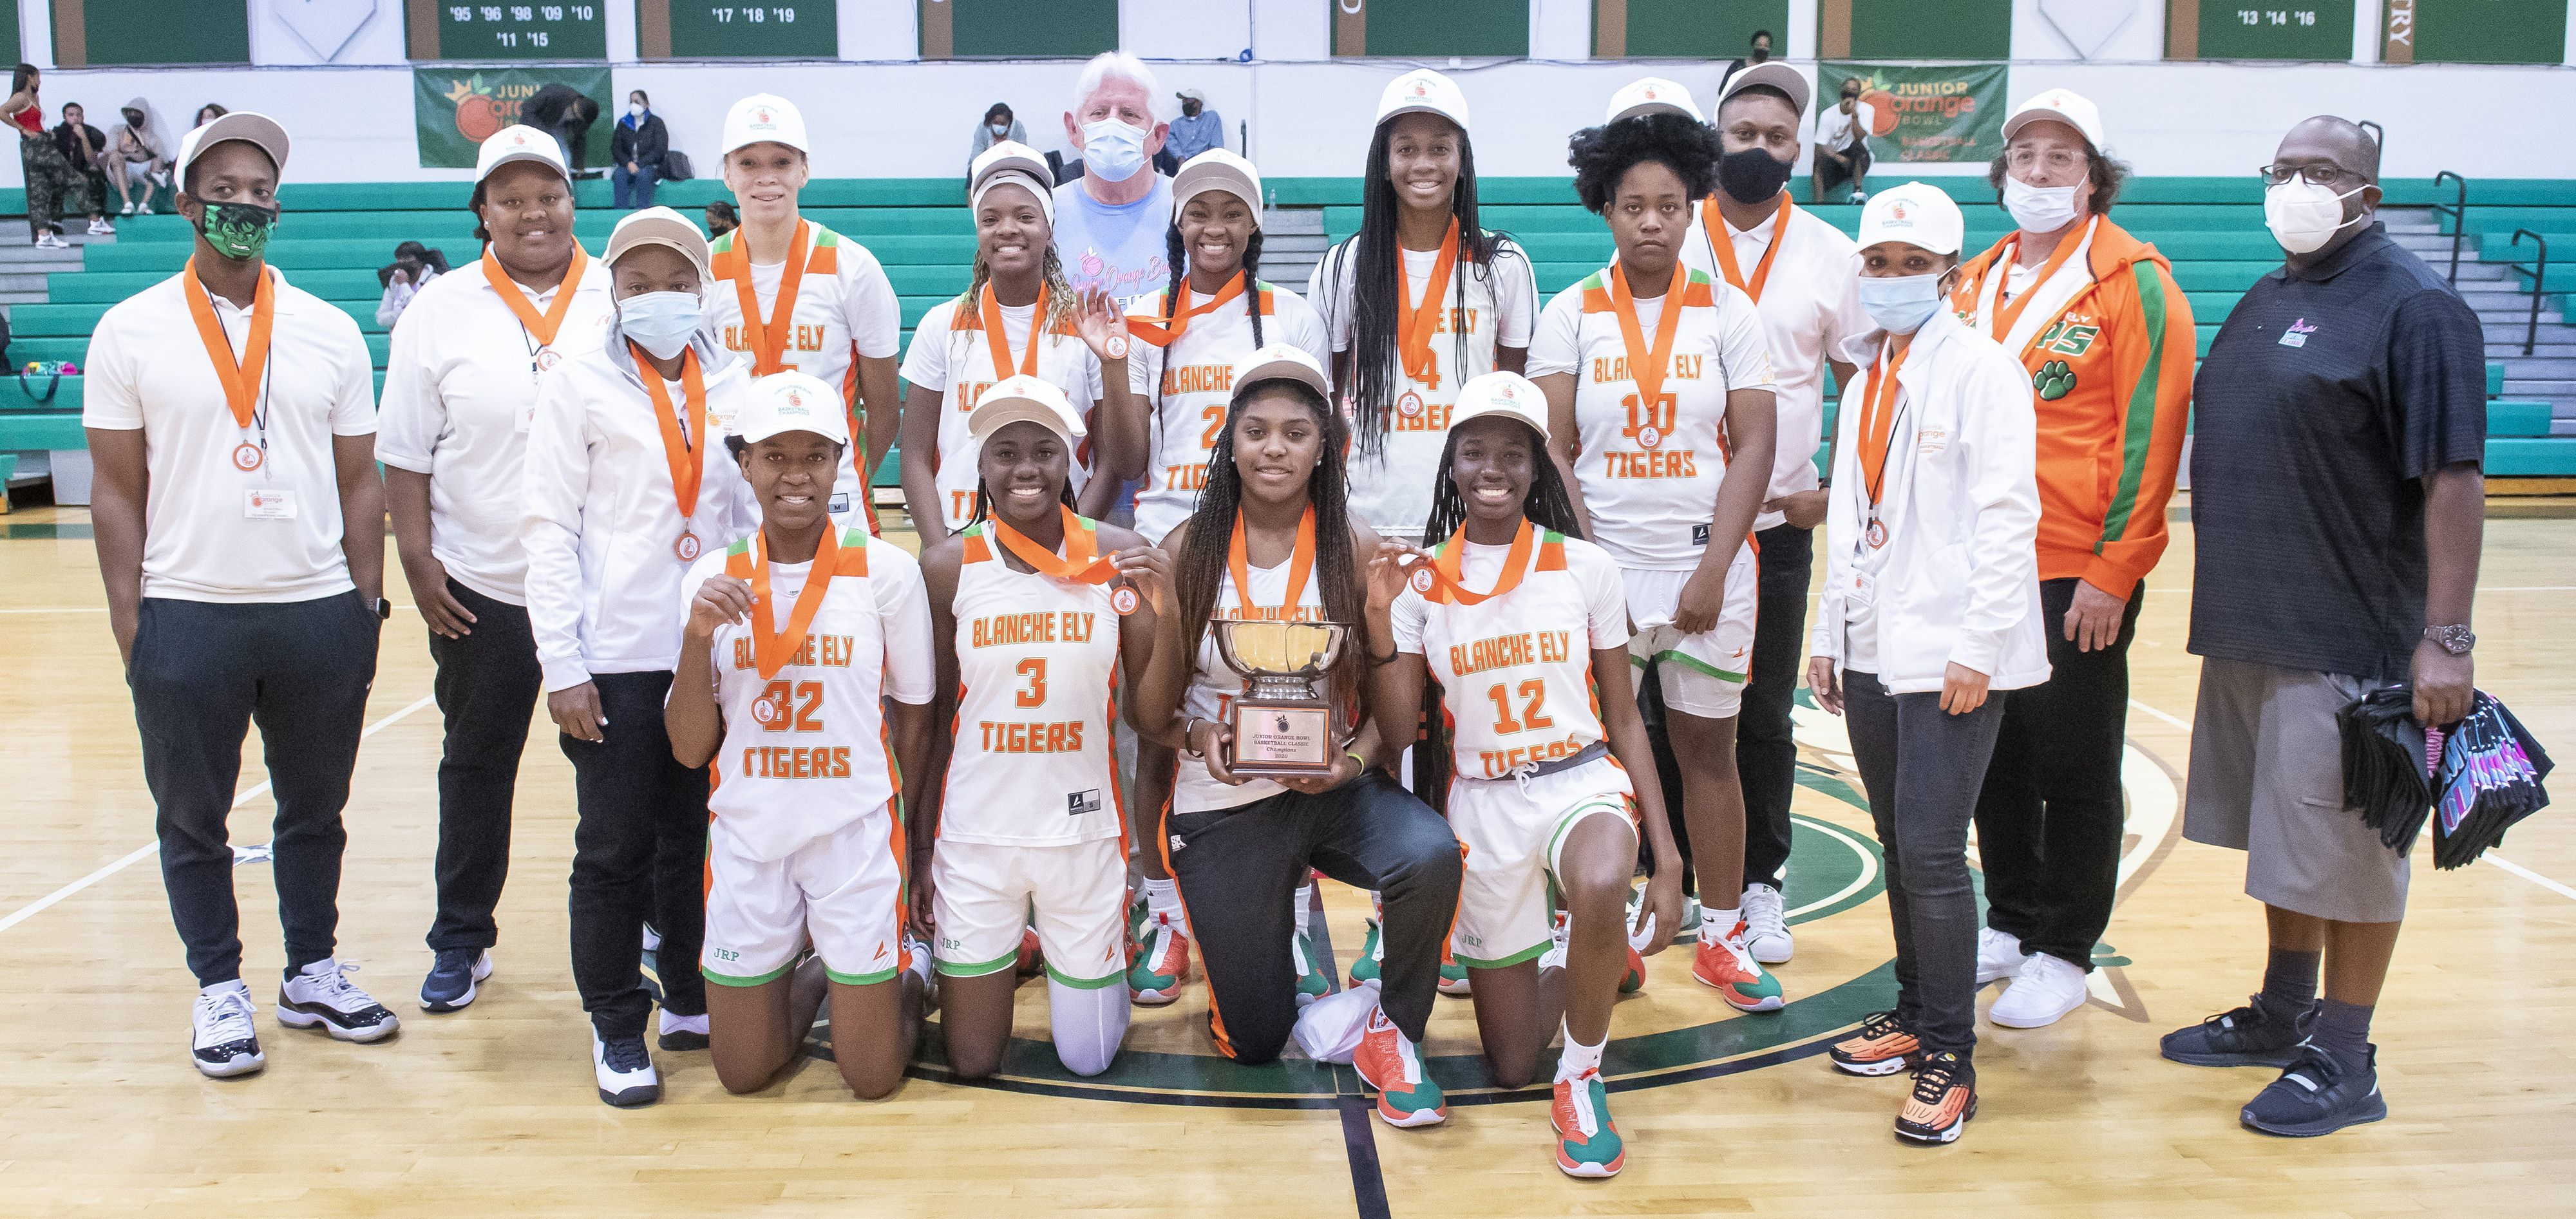 Kendall Gazette - Girls' Basketball Classic Champions - Pompano Beach Blache Ely